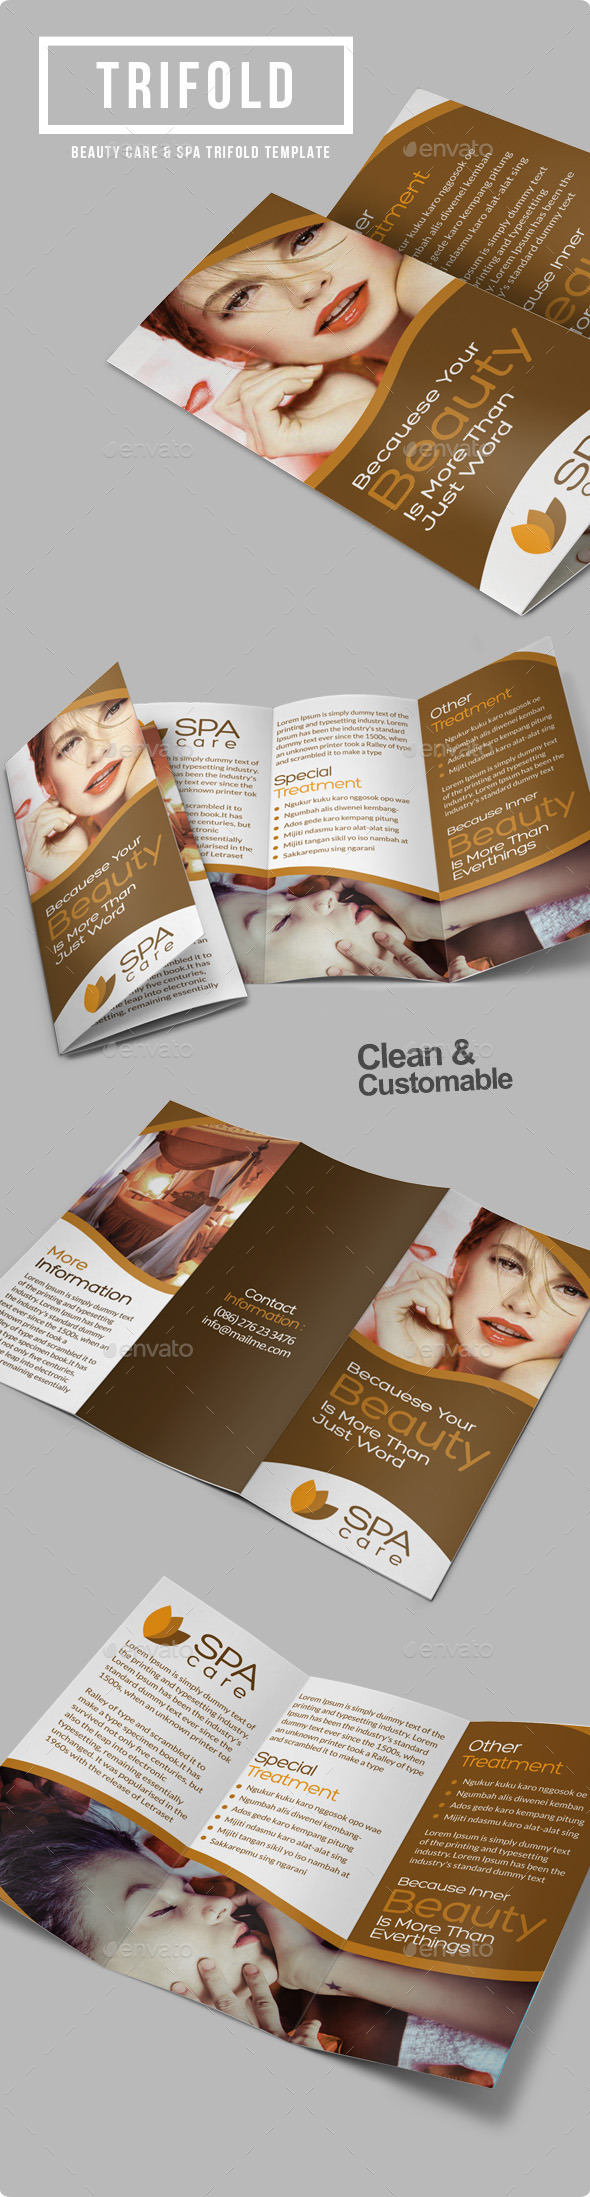 GraphicRiver Beauty Care Spa Trifold Brochure 8895148